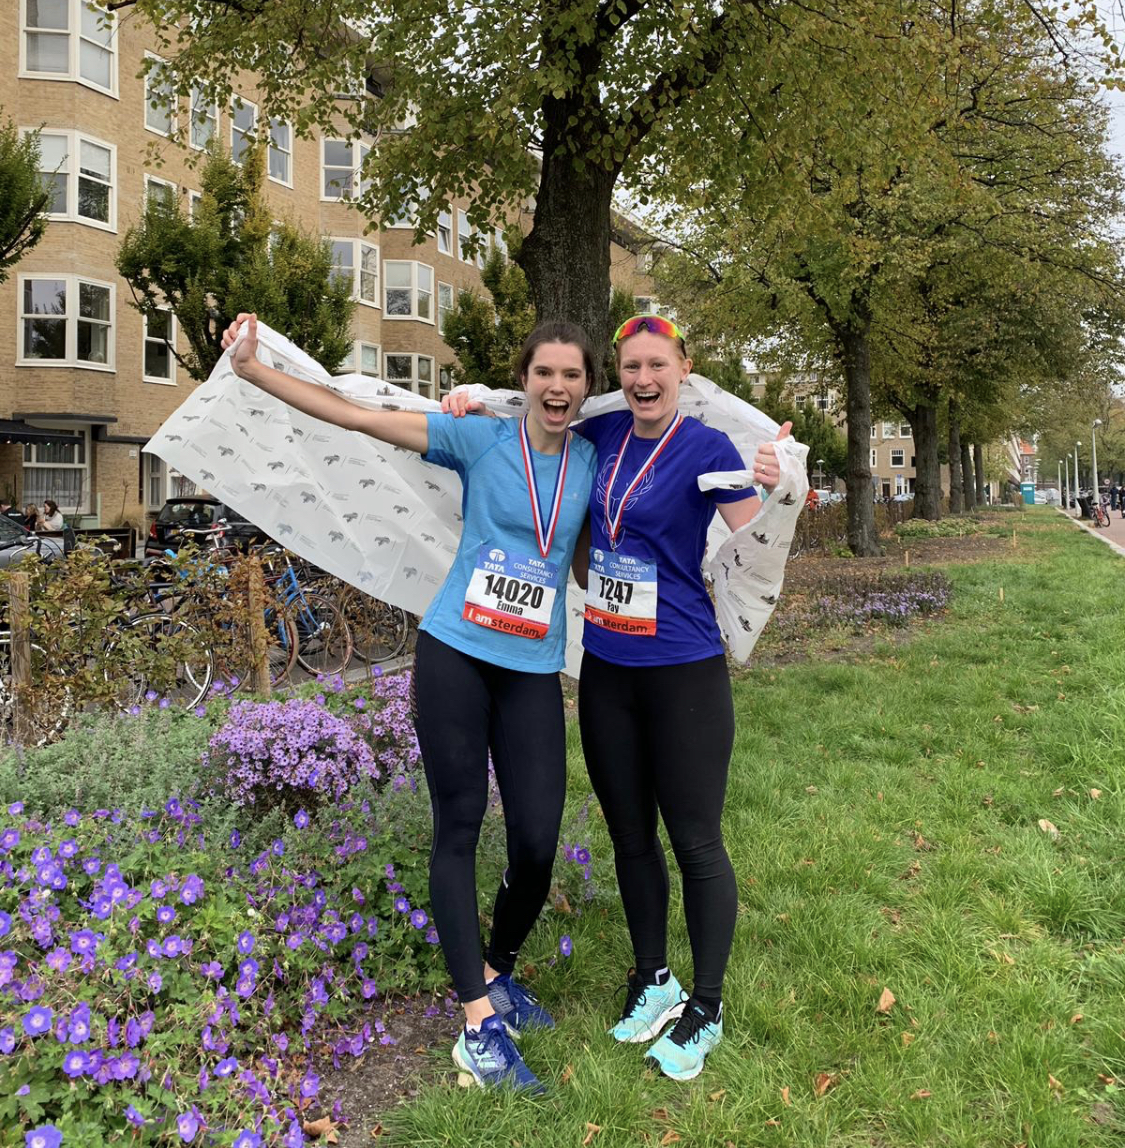 Training for the Amsterdam Marathon with Emma Petrie spread over a few months, we had a lot of great runs and sluggish runs during our training programme!